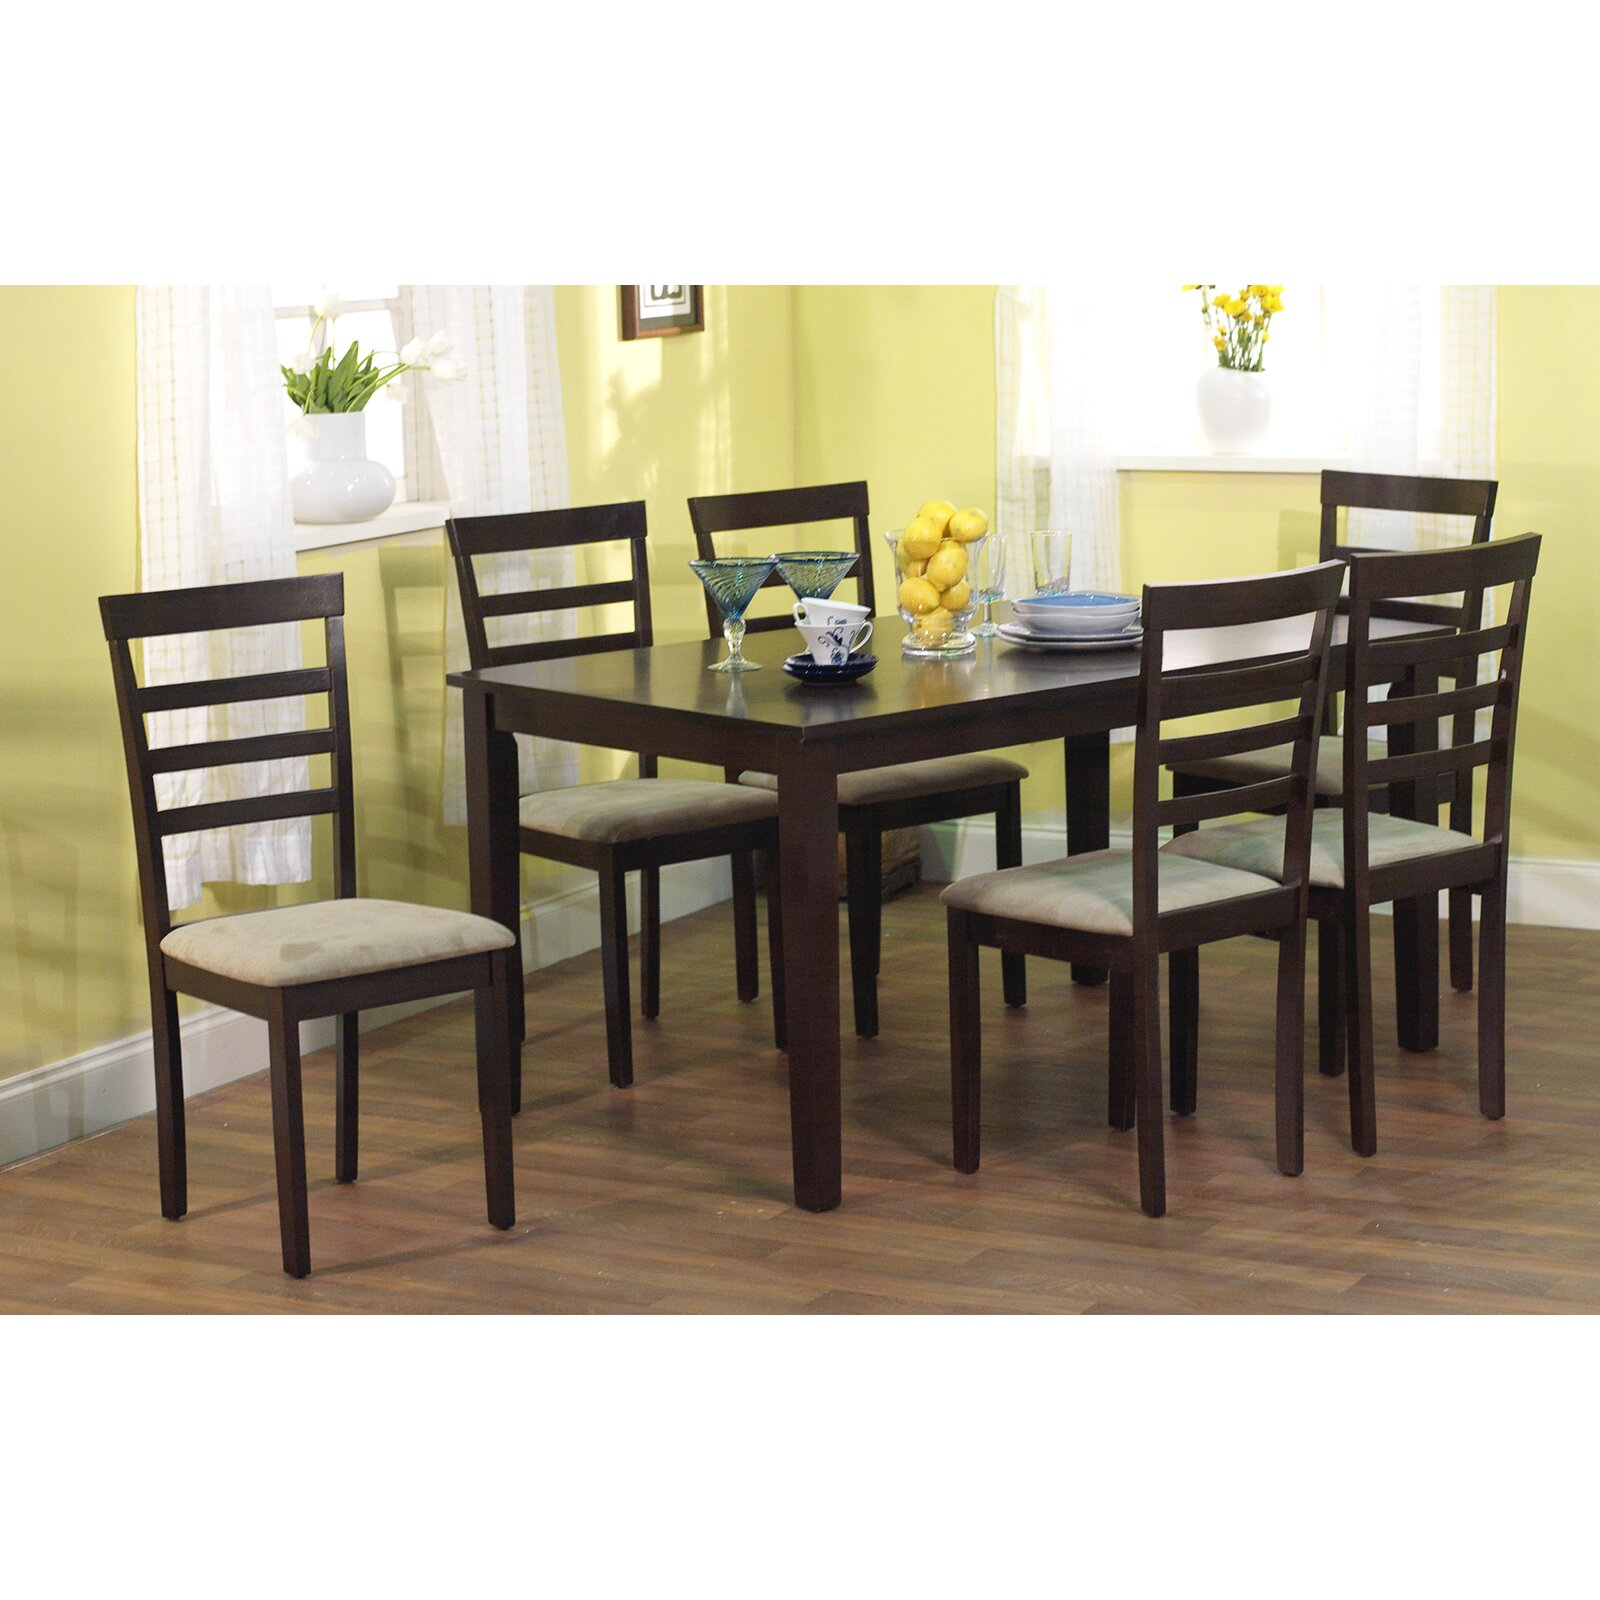 tms havana 7 piece dining set reviews wayfair